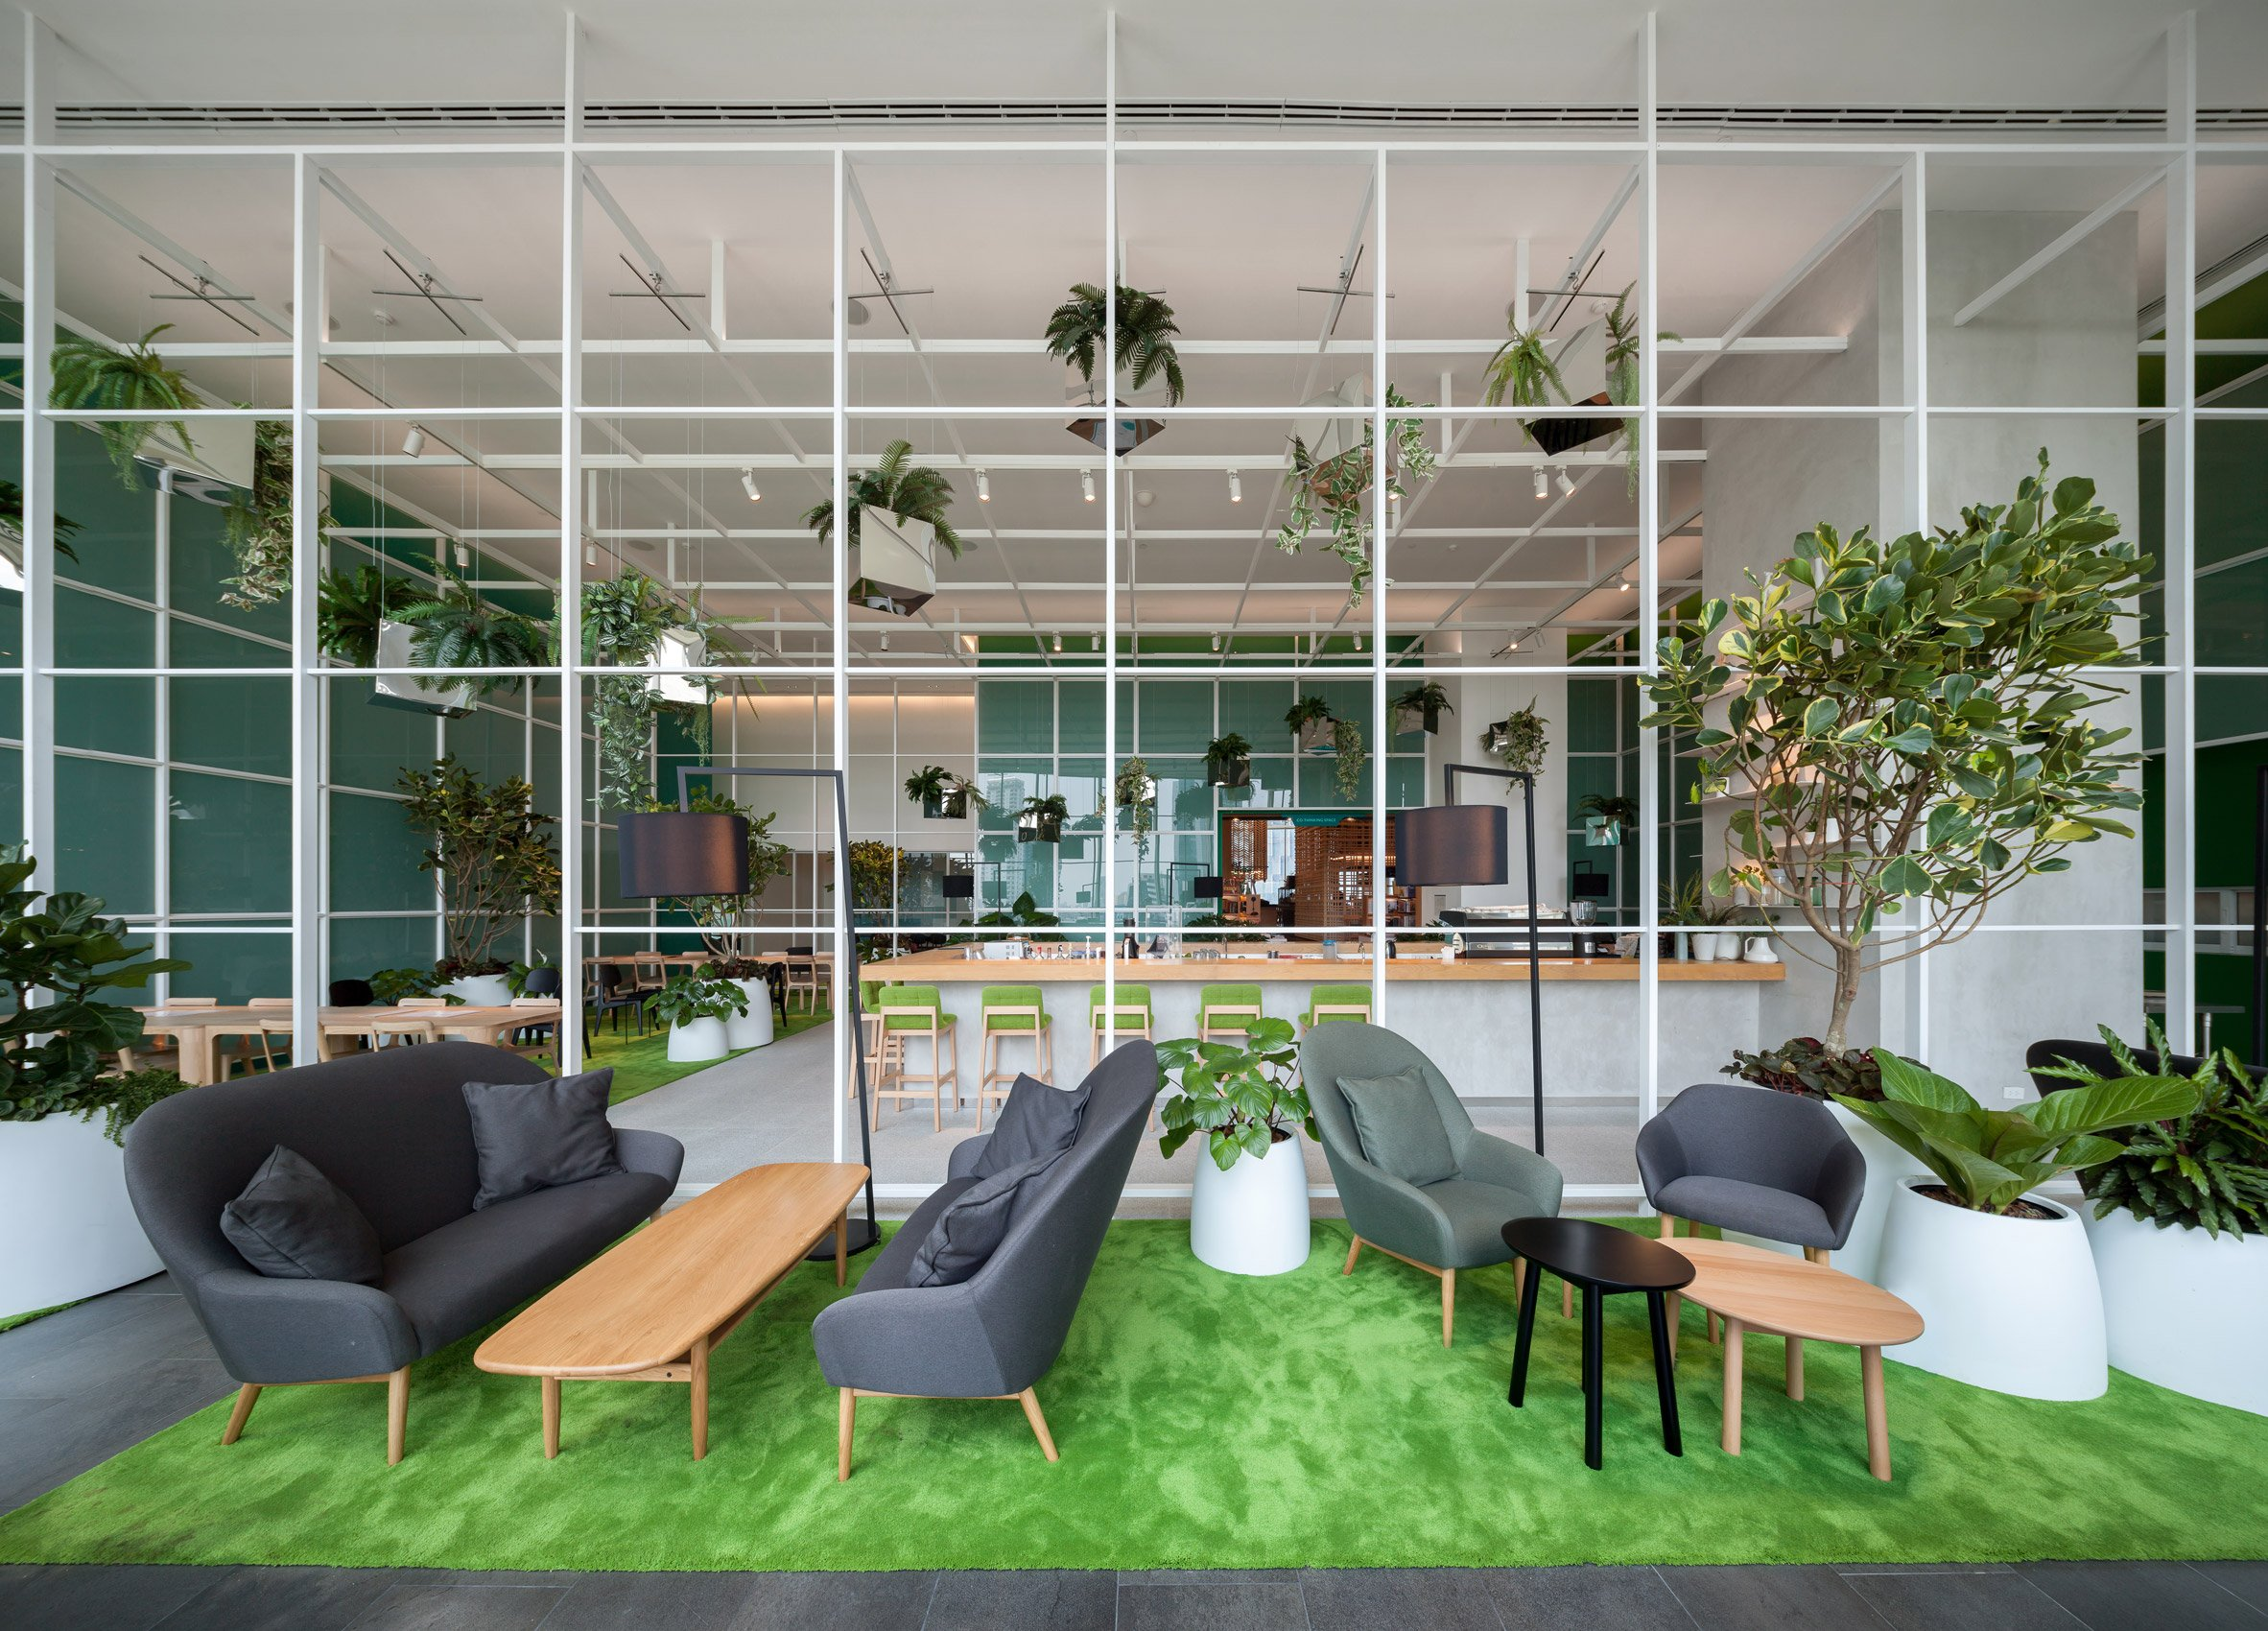 Open House Central Embassy by Klein Dytham architecture